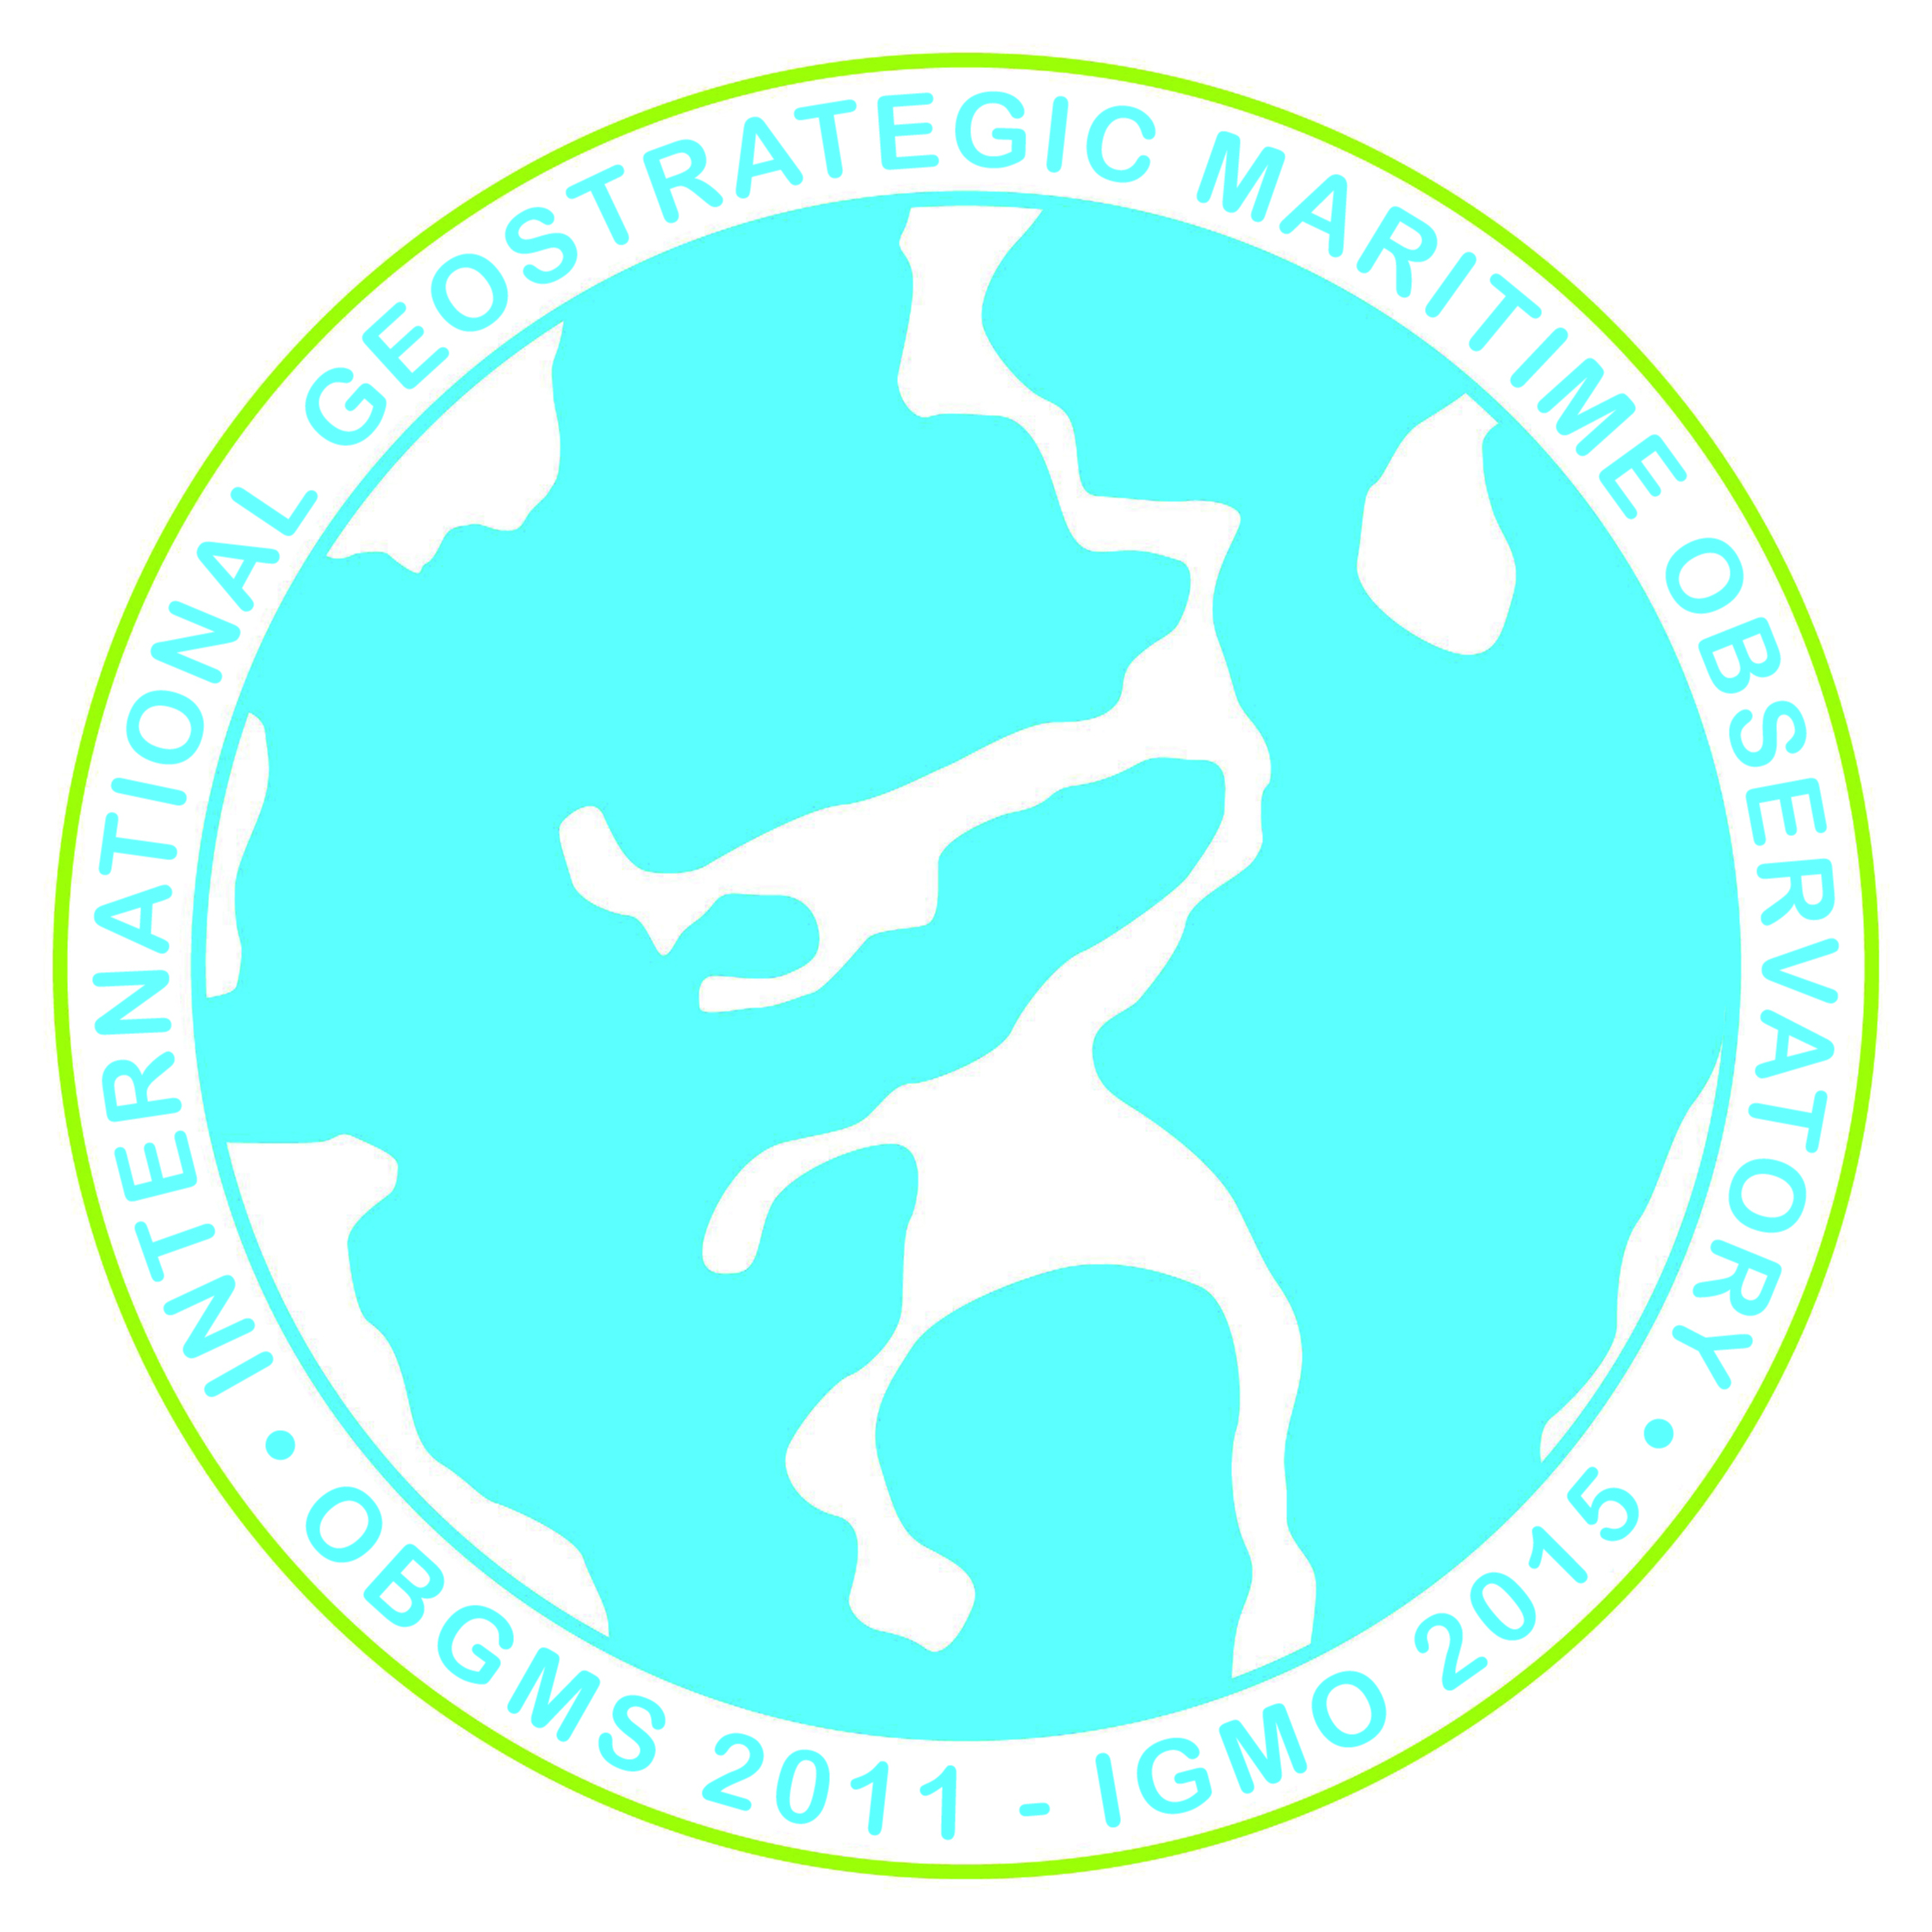 International Geostrategic Maritime Observatory (IGMO)